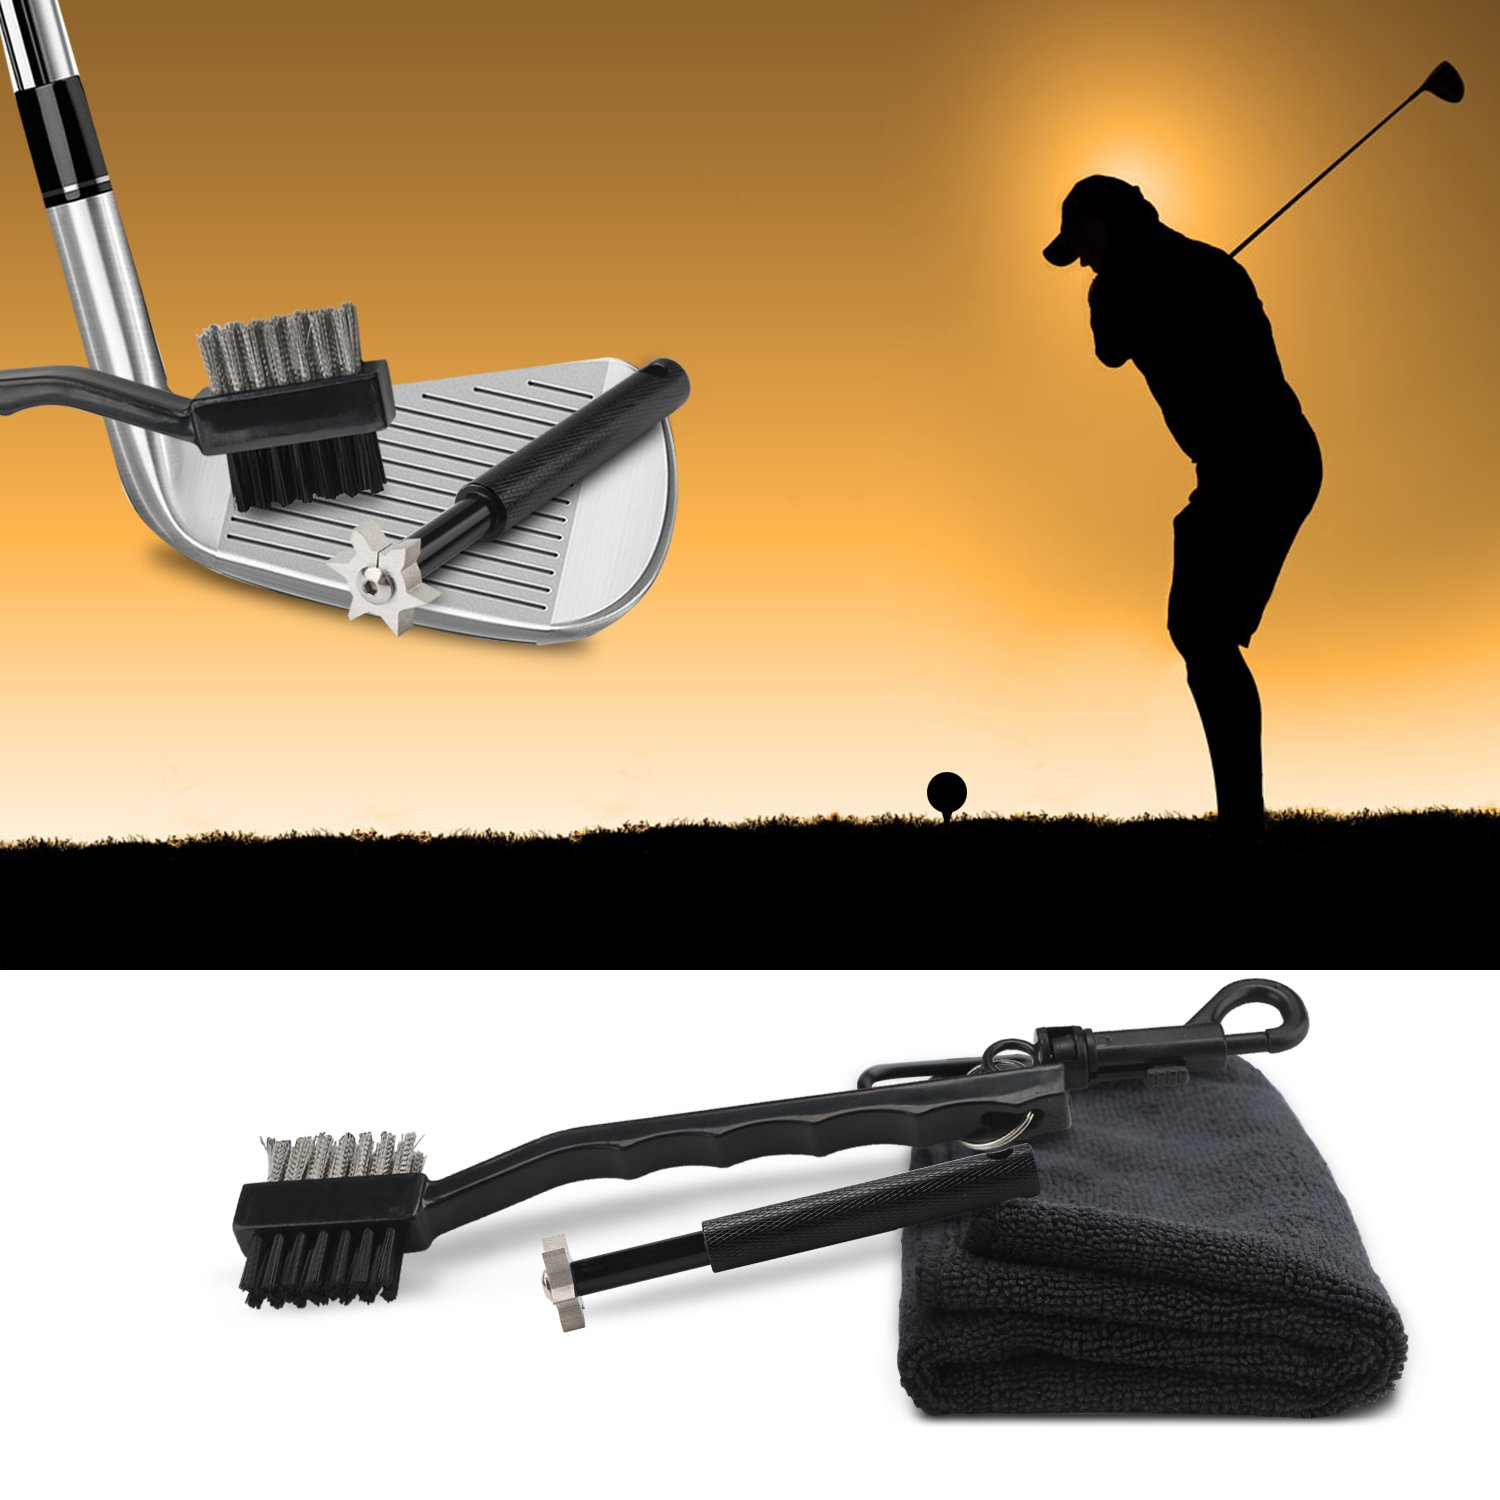 Black Golf Towel with Brush & Club Groove Sharpener Set, Handy DROK Golf Club Cleaner with 16″×16″ Microfiber Sport Towel & 6-Cutter Aluminum Regrooving Tool, Awesome Golf Accessories by DROK (Image #2)